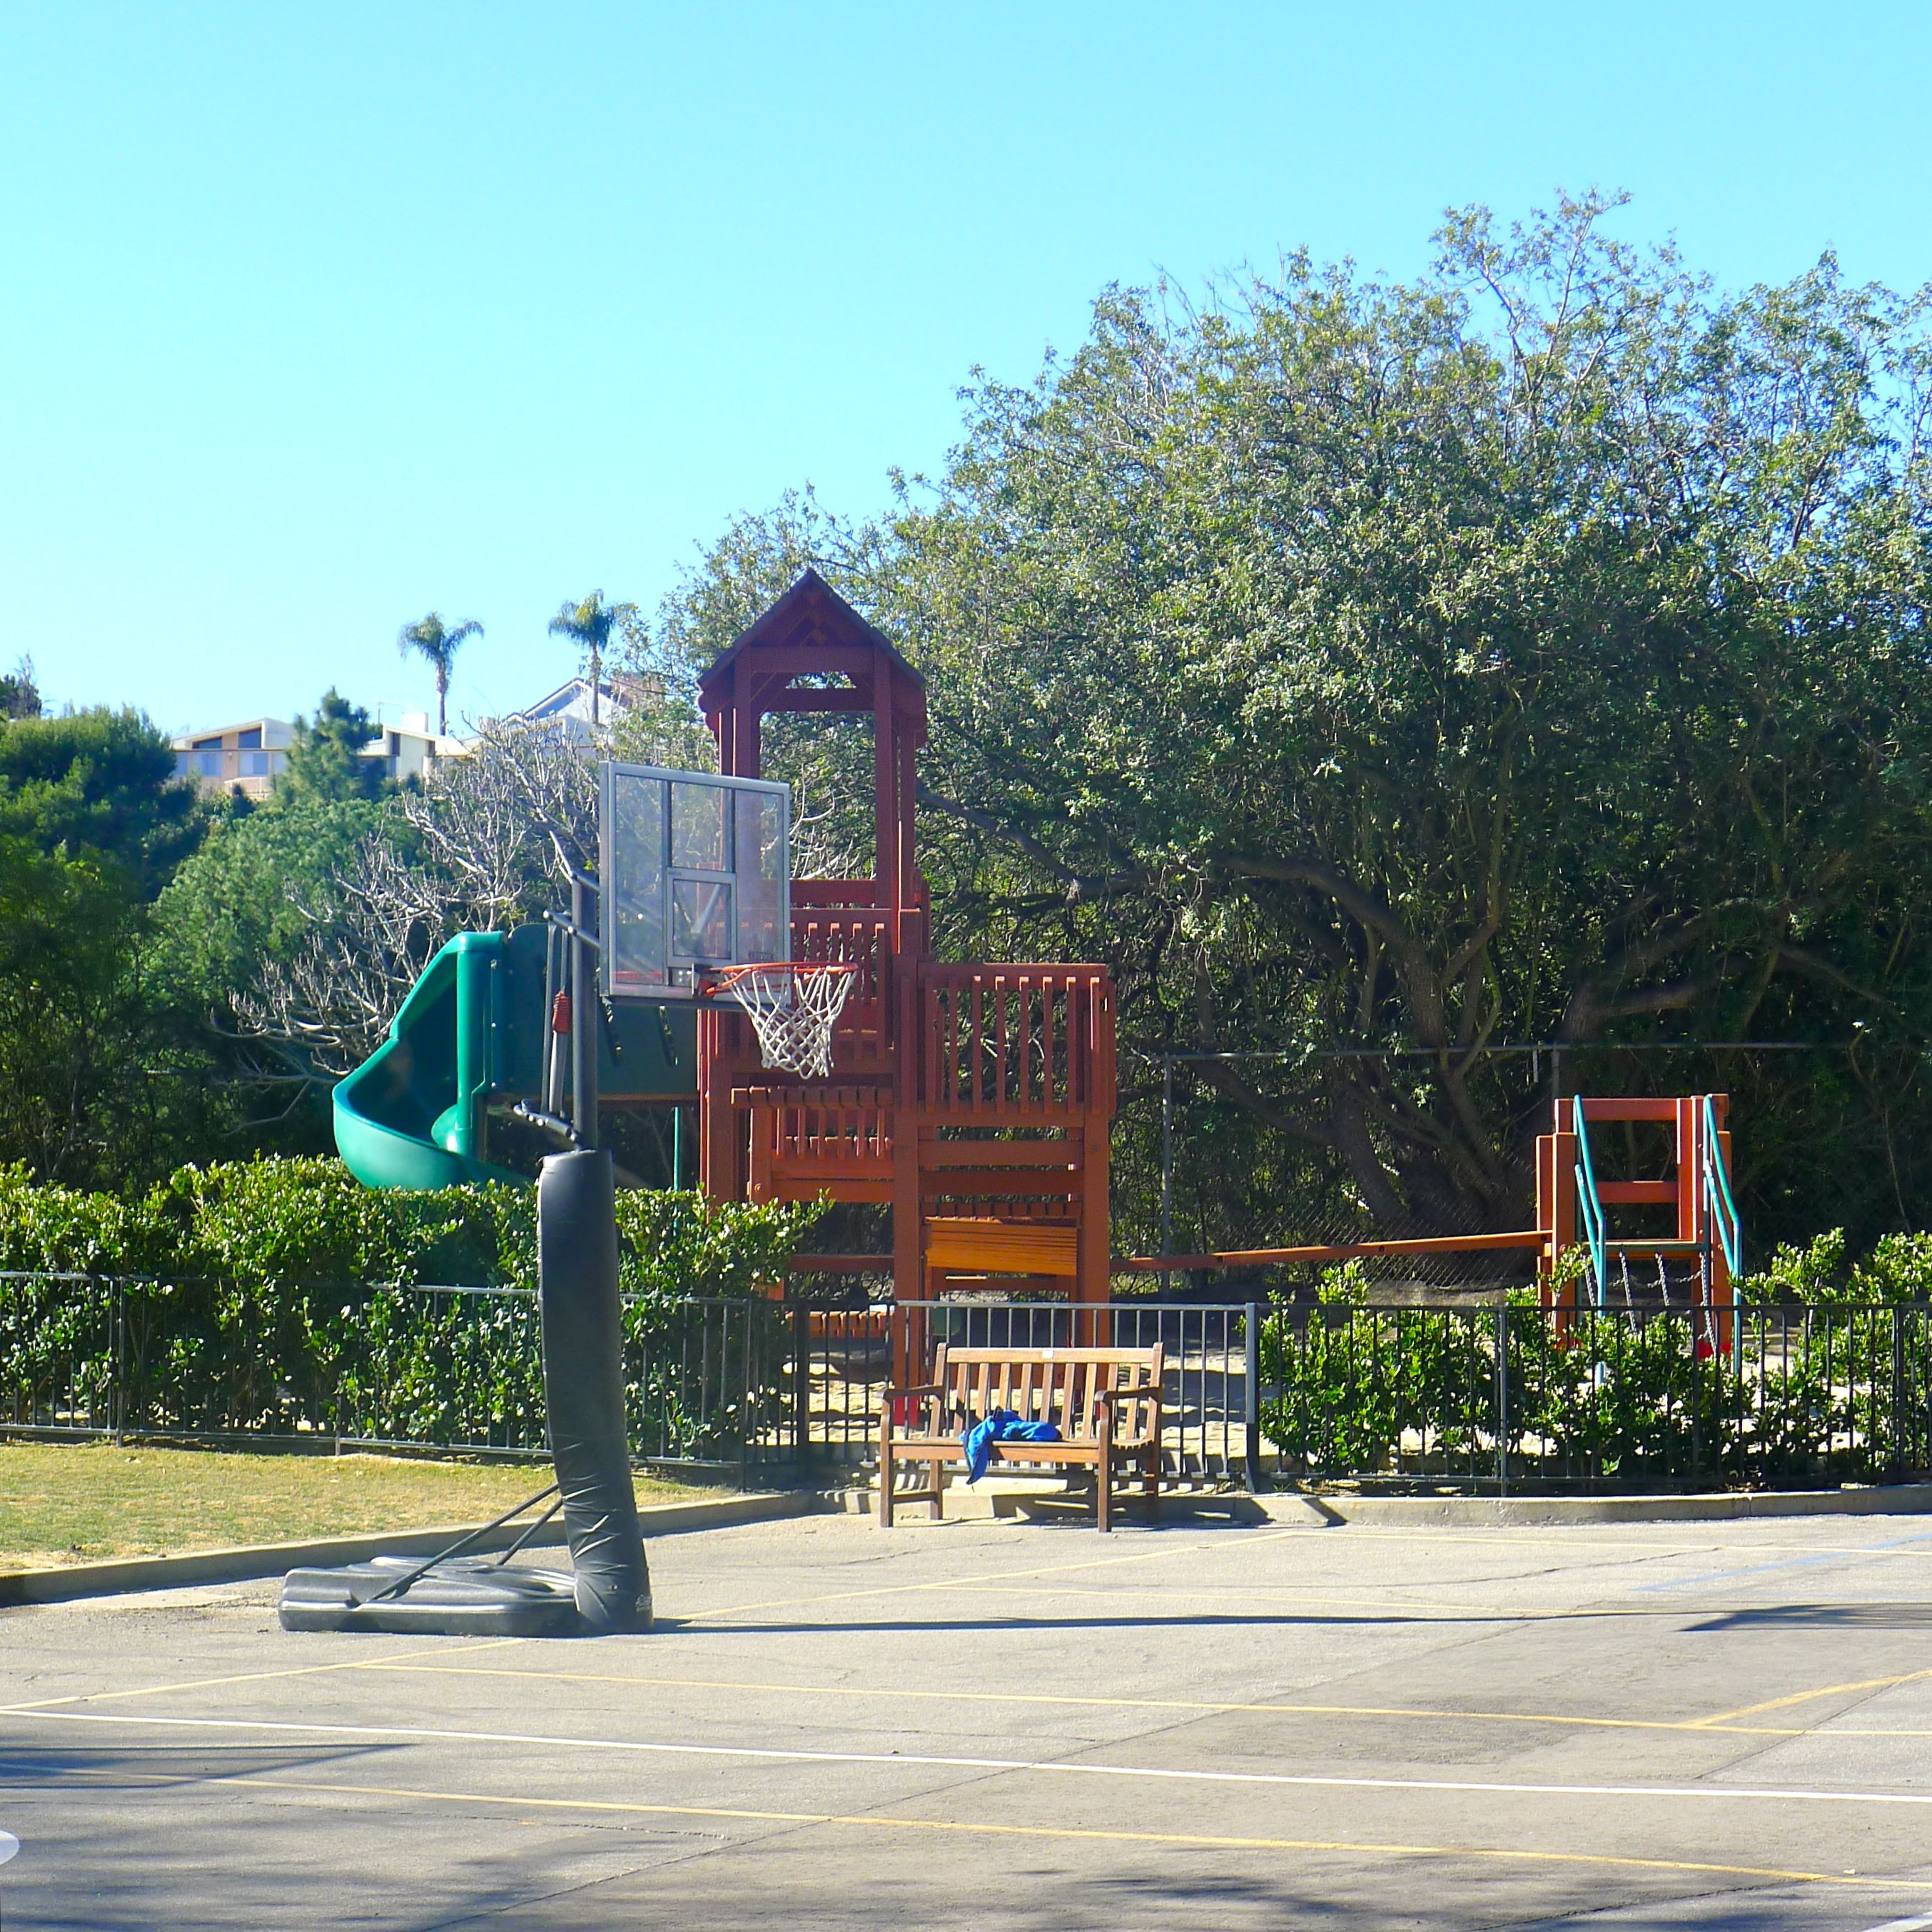 A view of the outdoor play area